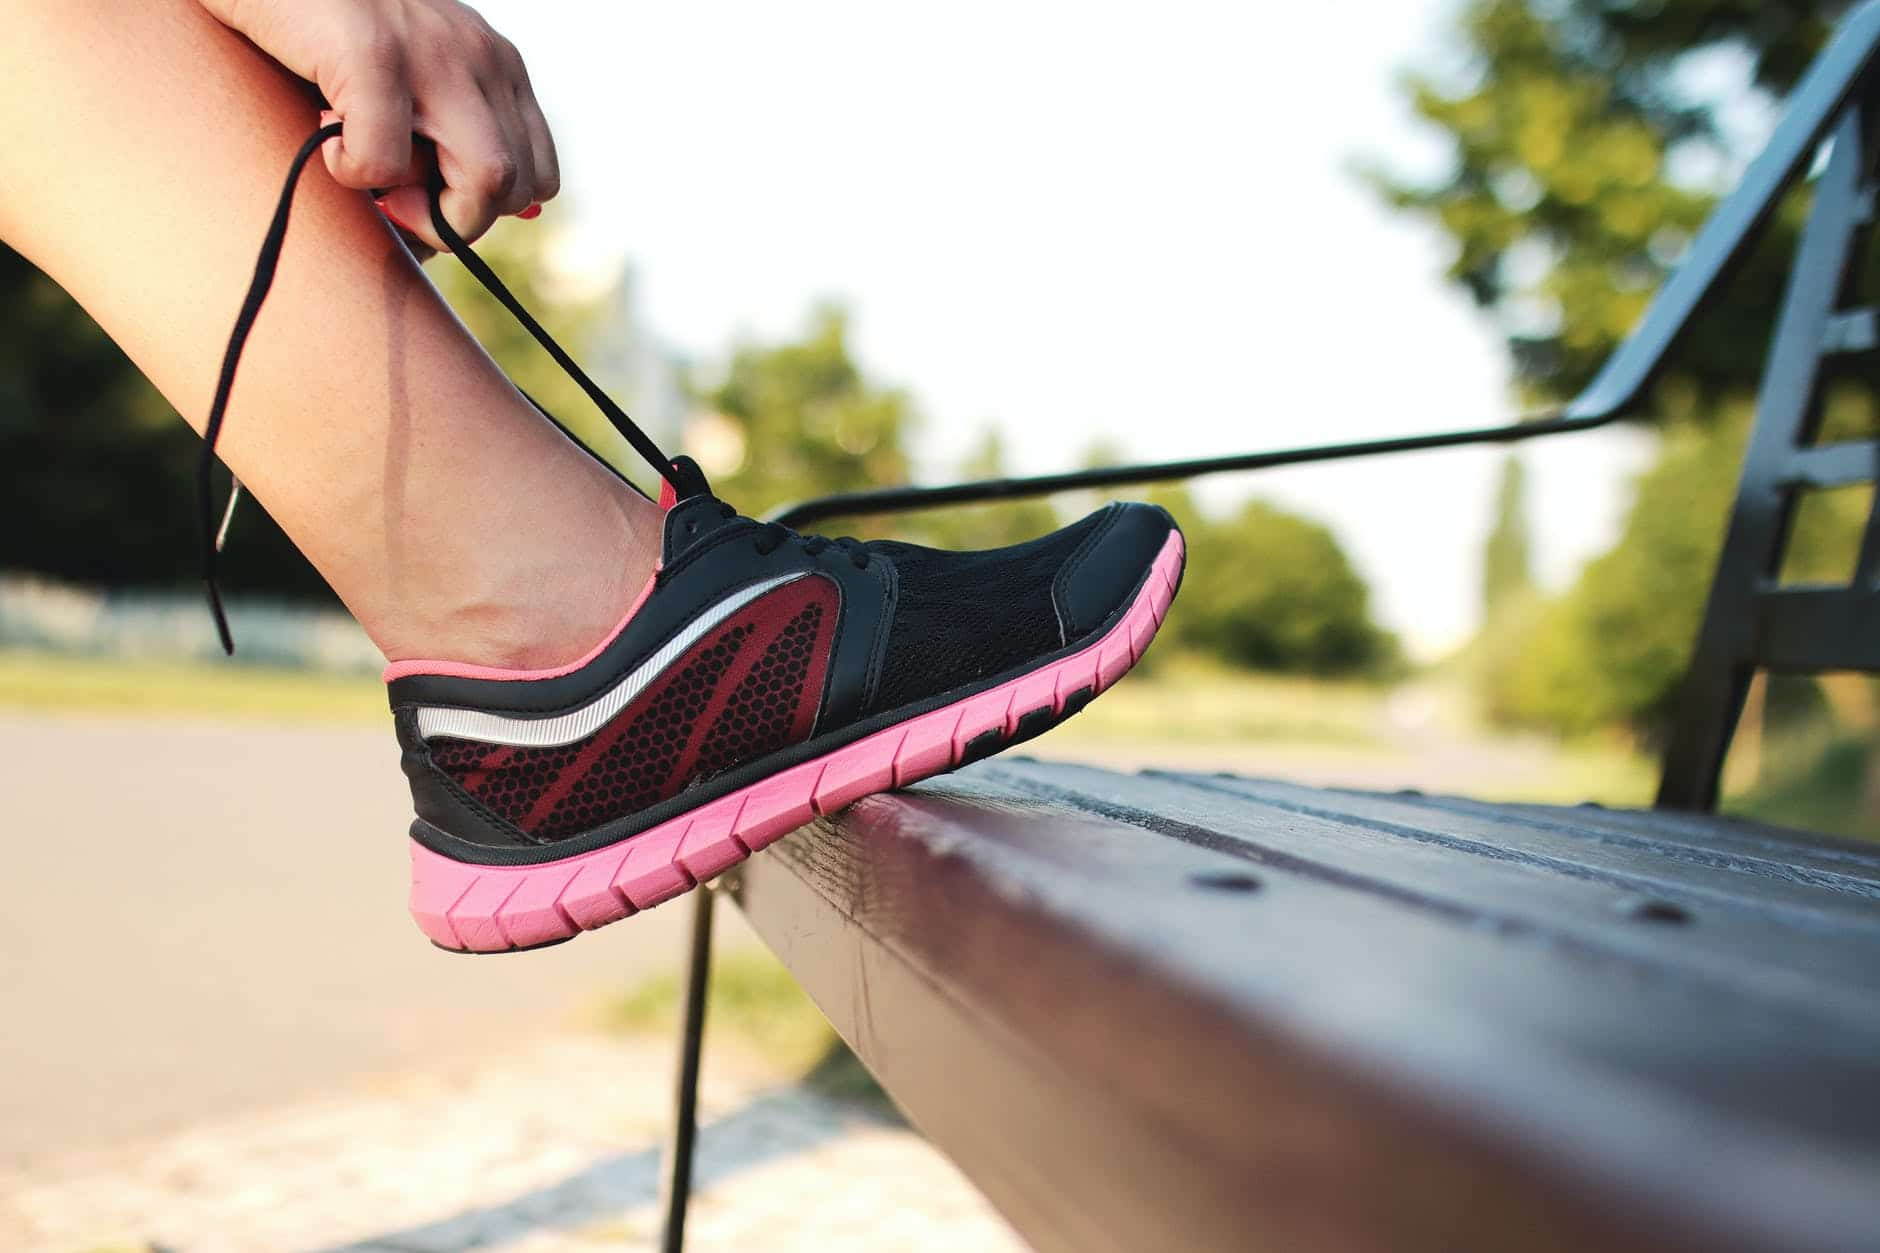 Purchasing guide for budget running shoes